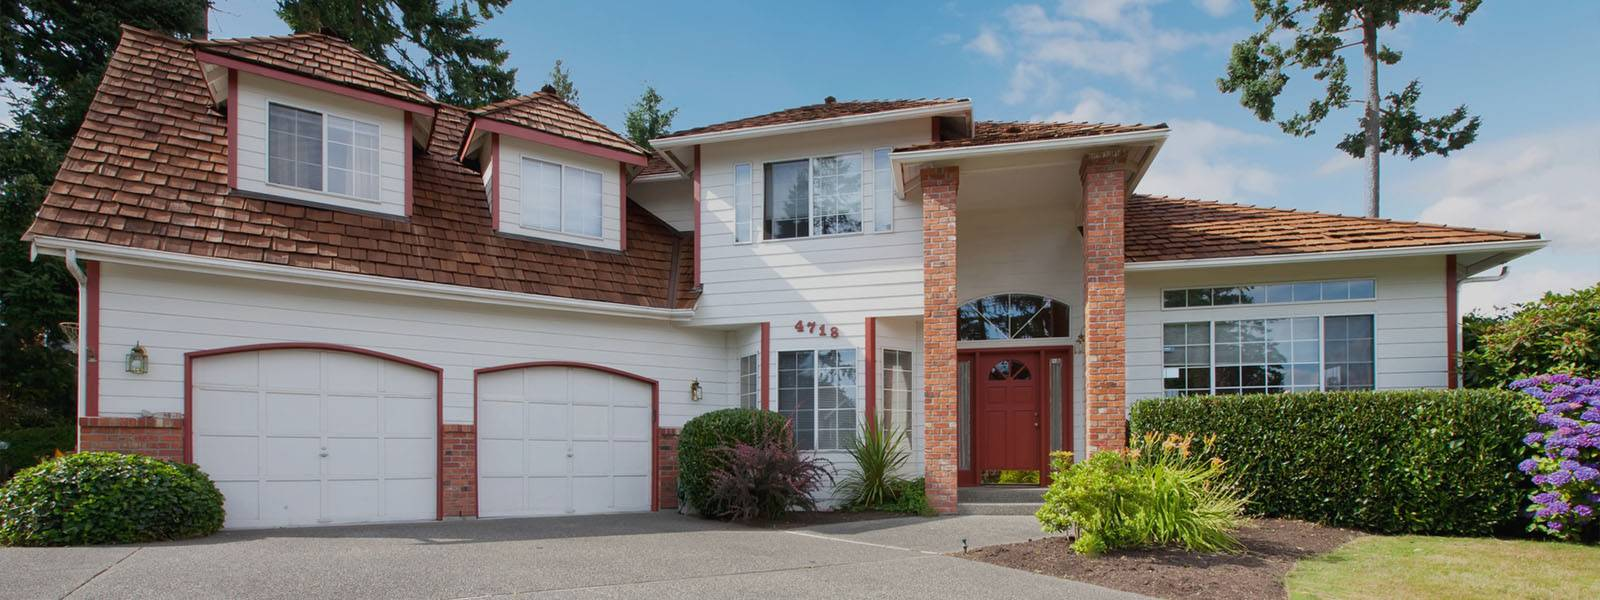 large house with double garage doors in white